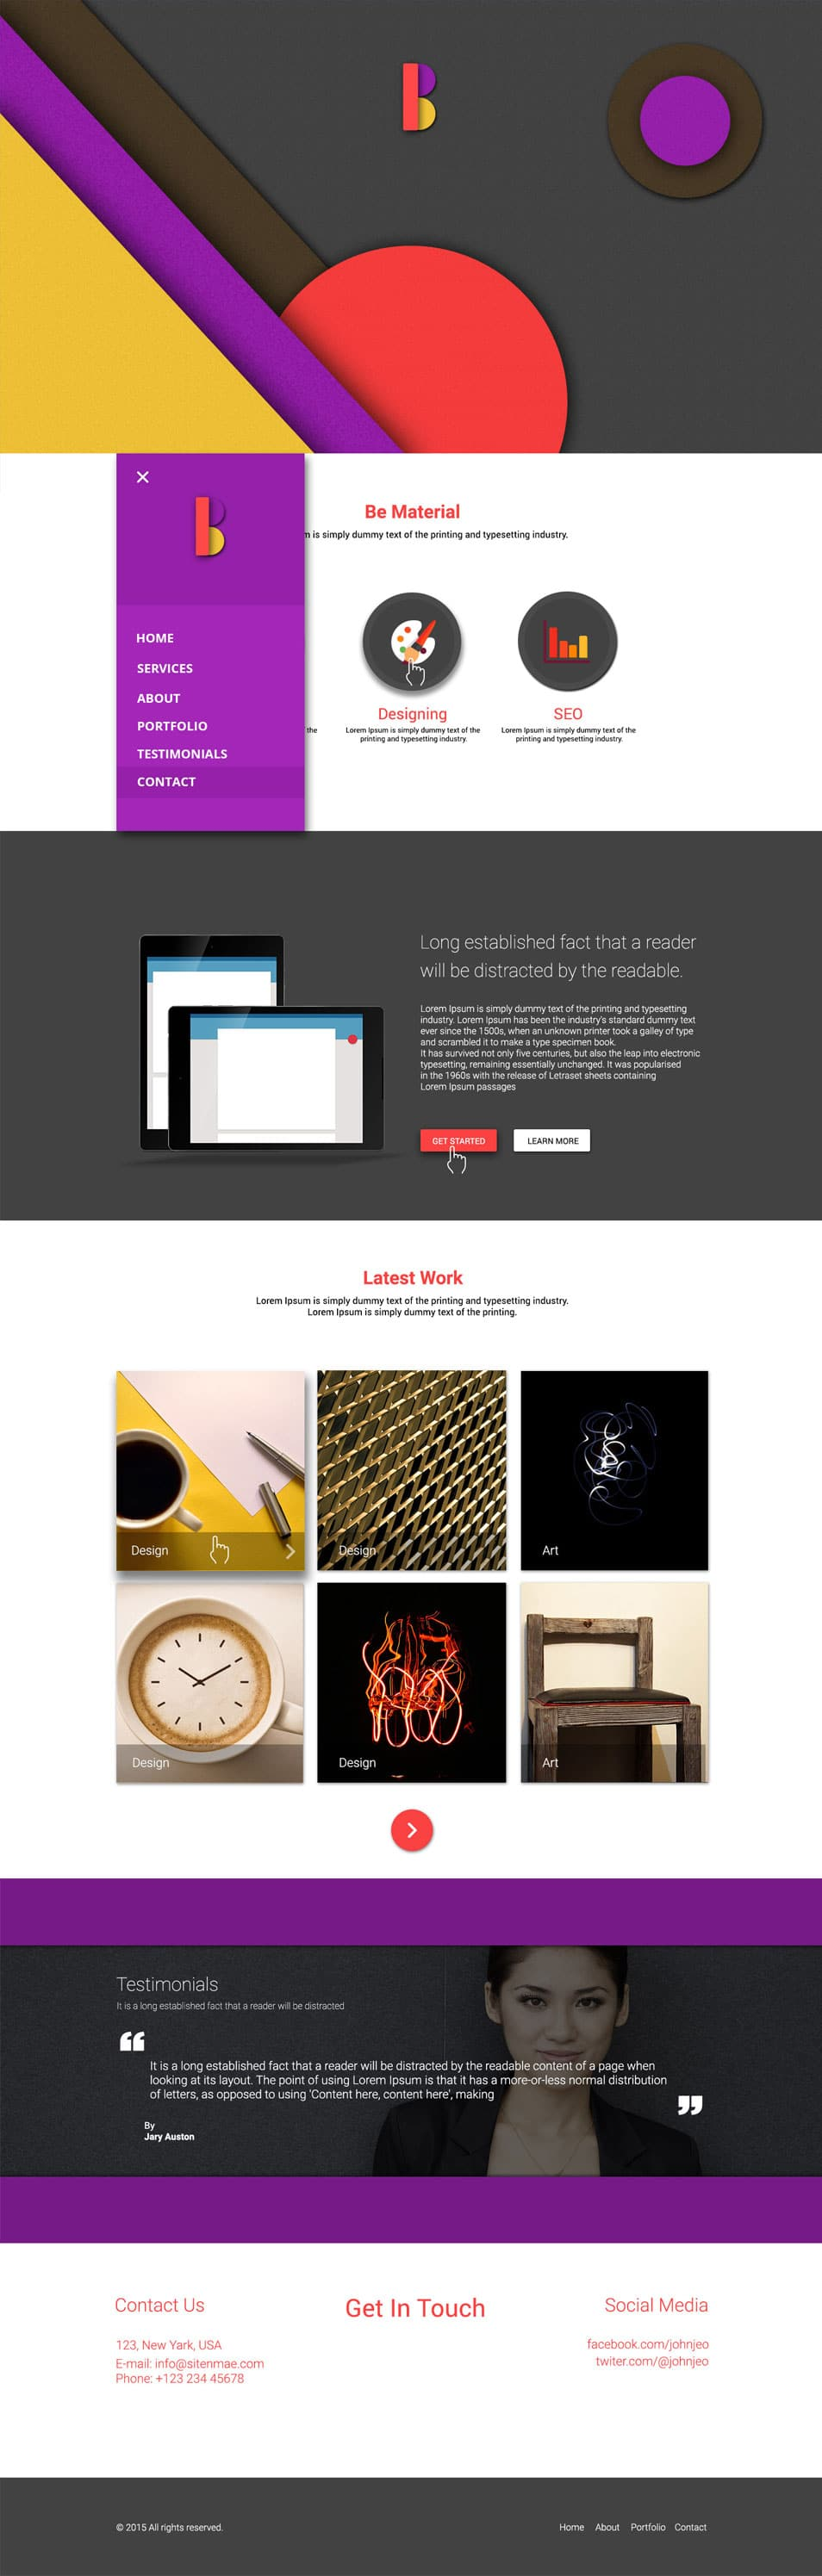 Be Material – One Page Material Design Psd Template